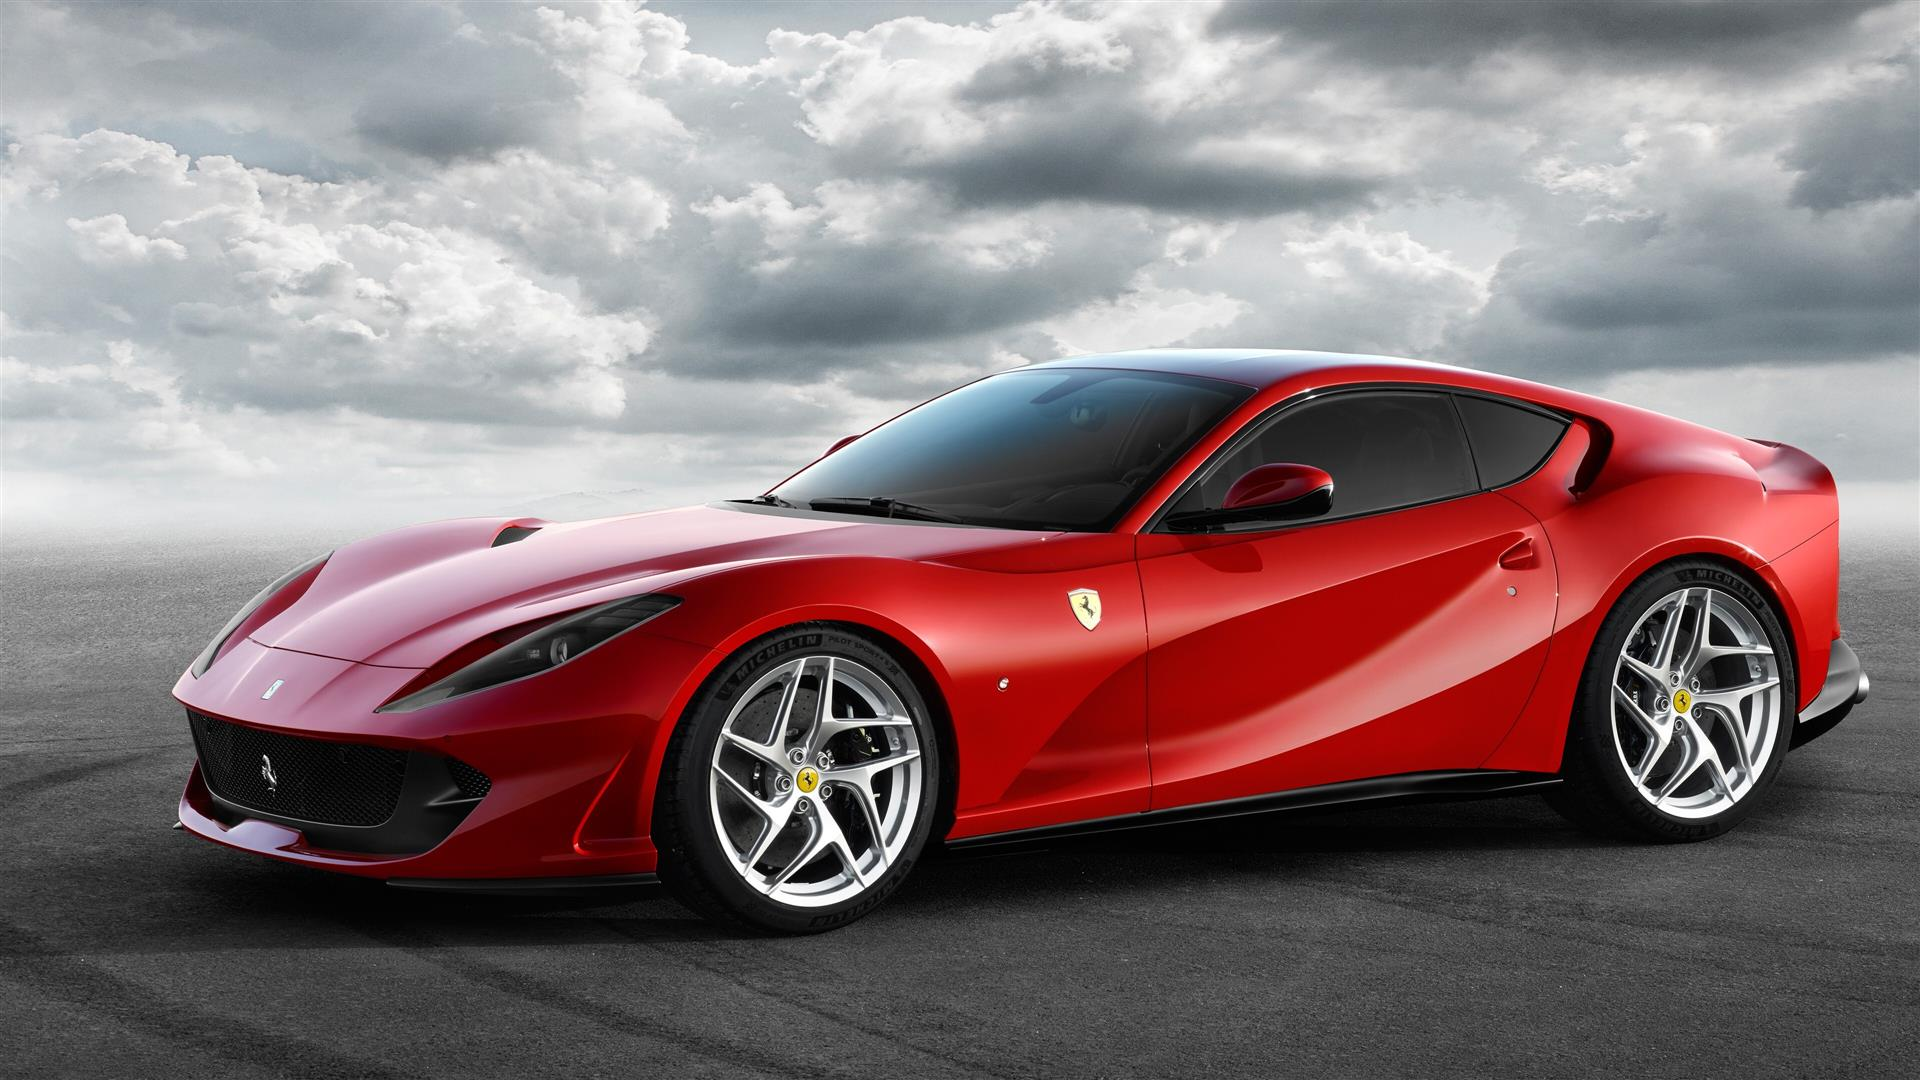 1920x1080 4K Photo of 2019 Ferrari 812 Superfast Red Car